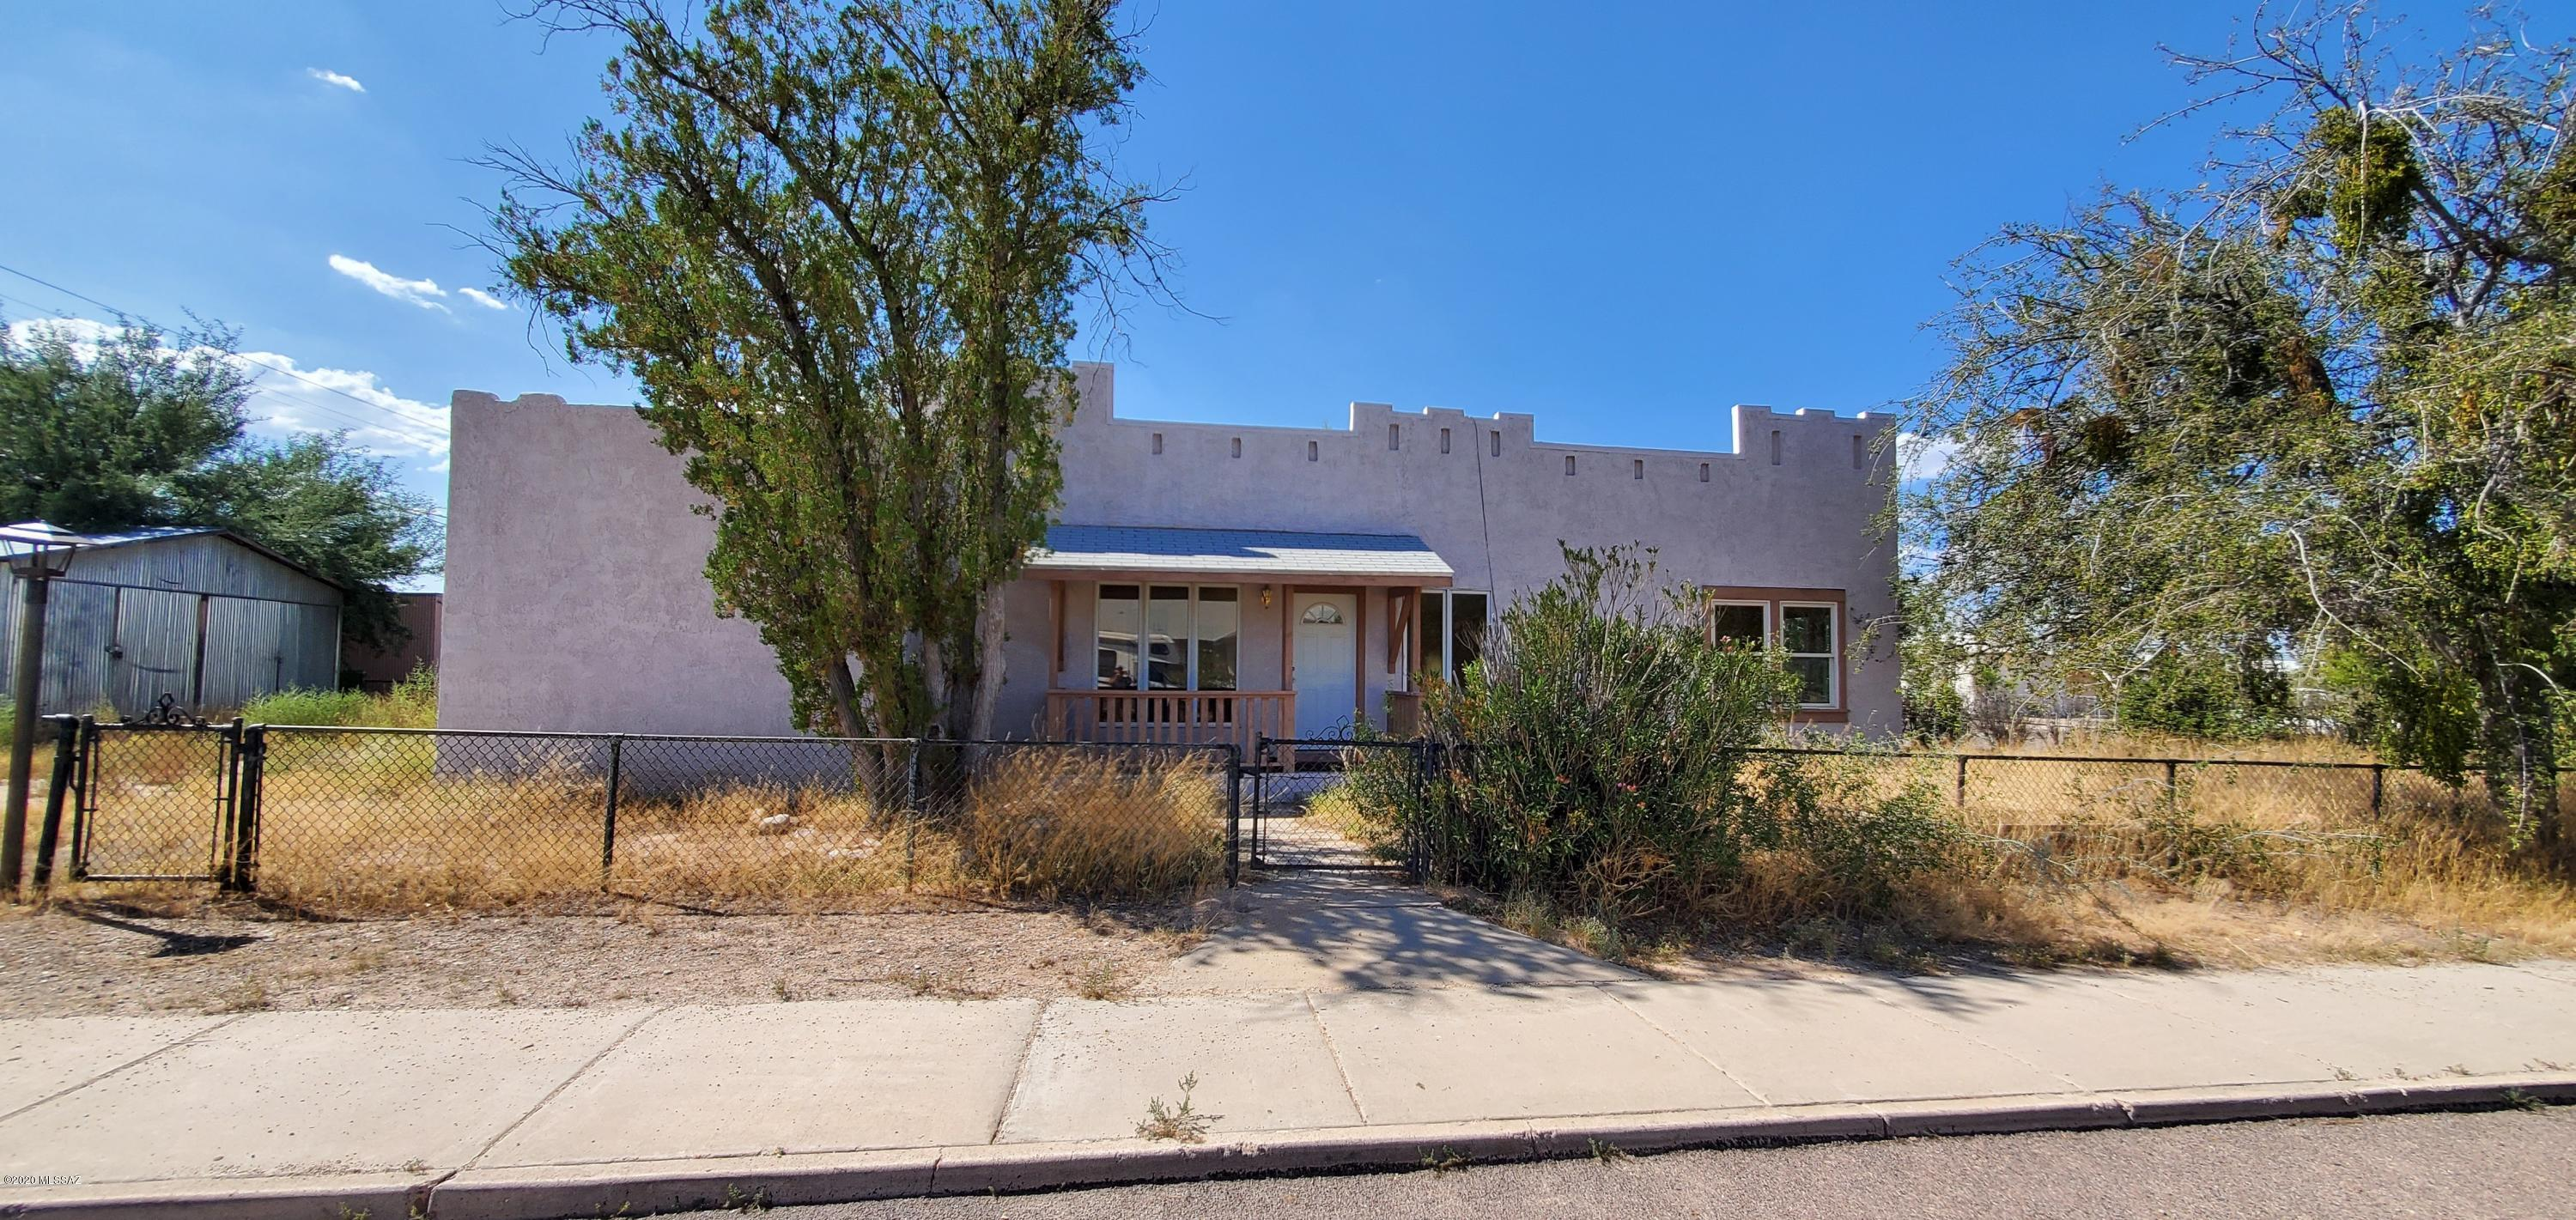 209 W 6Th Street, Benson, Arizona 85602, 4 Bedrooms Bedrooms, ,4 BathroomsBathrooms,Single Family,For Sale,209 W 6Th Street,22024834